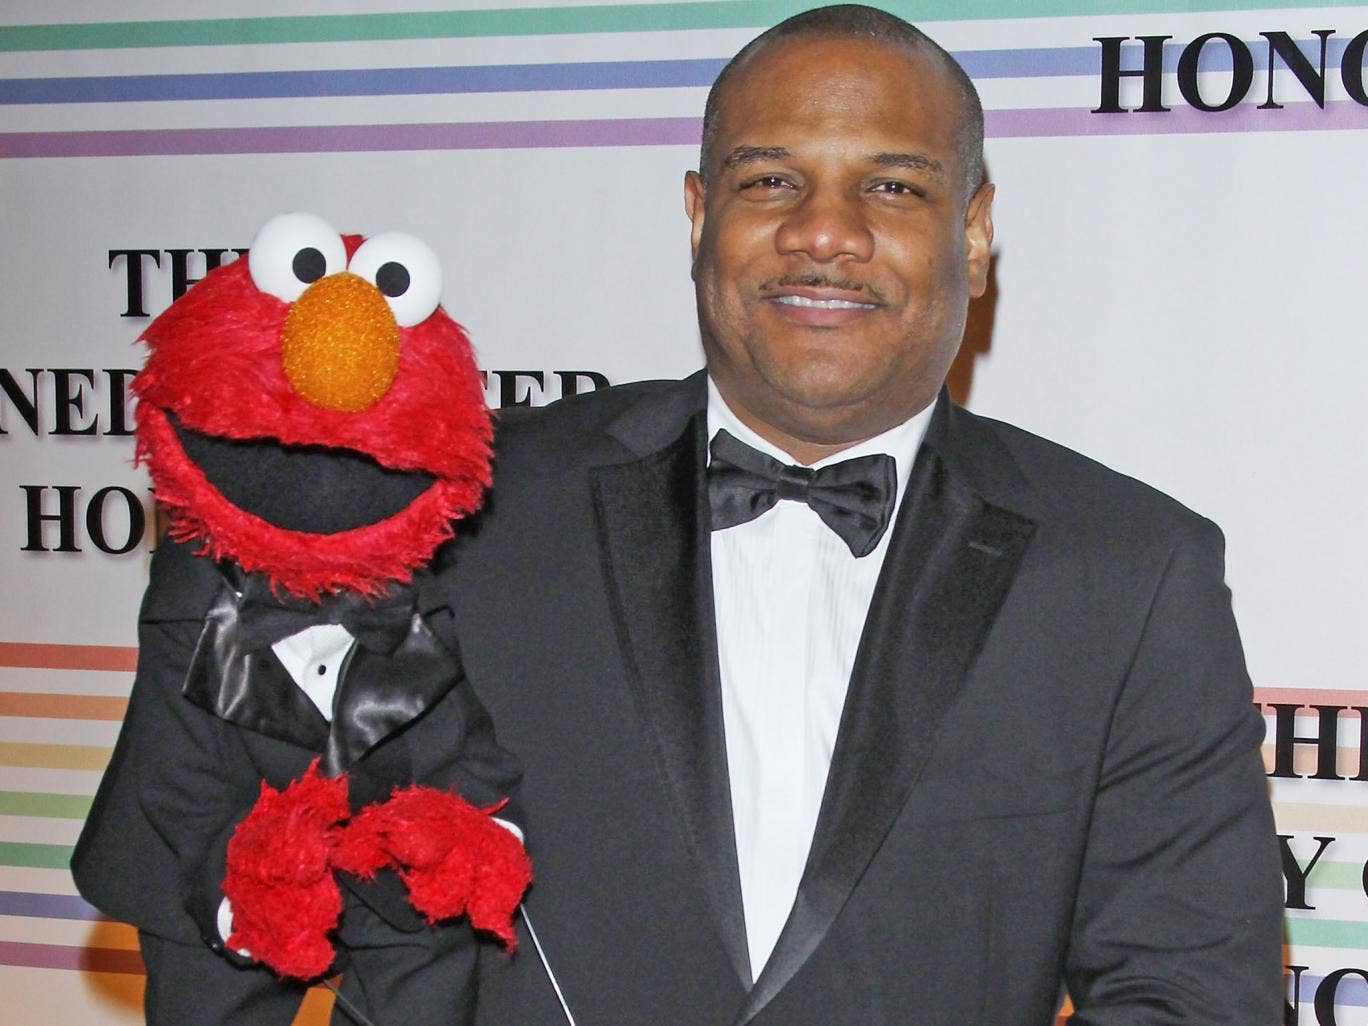 Kevin Clash poses with Elmo